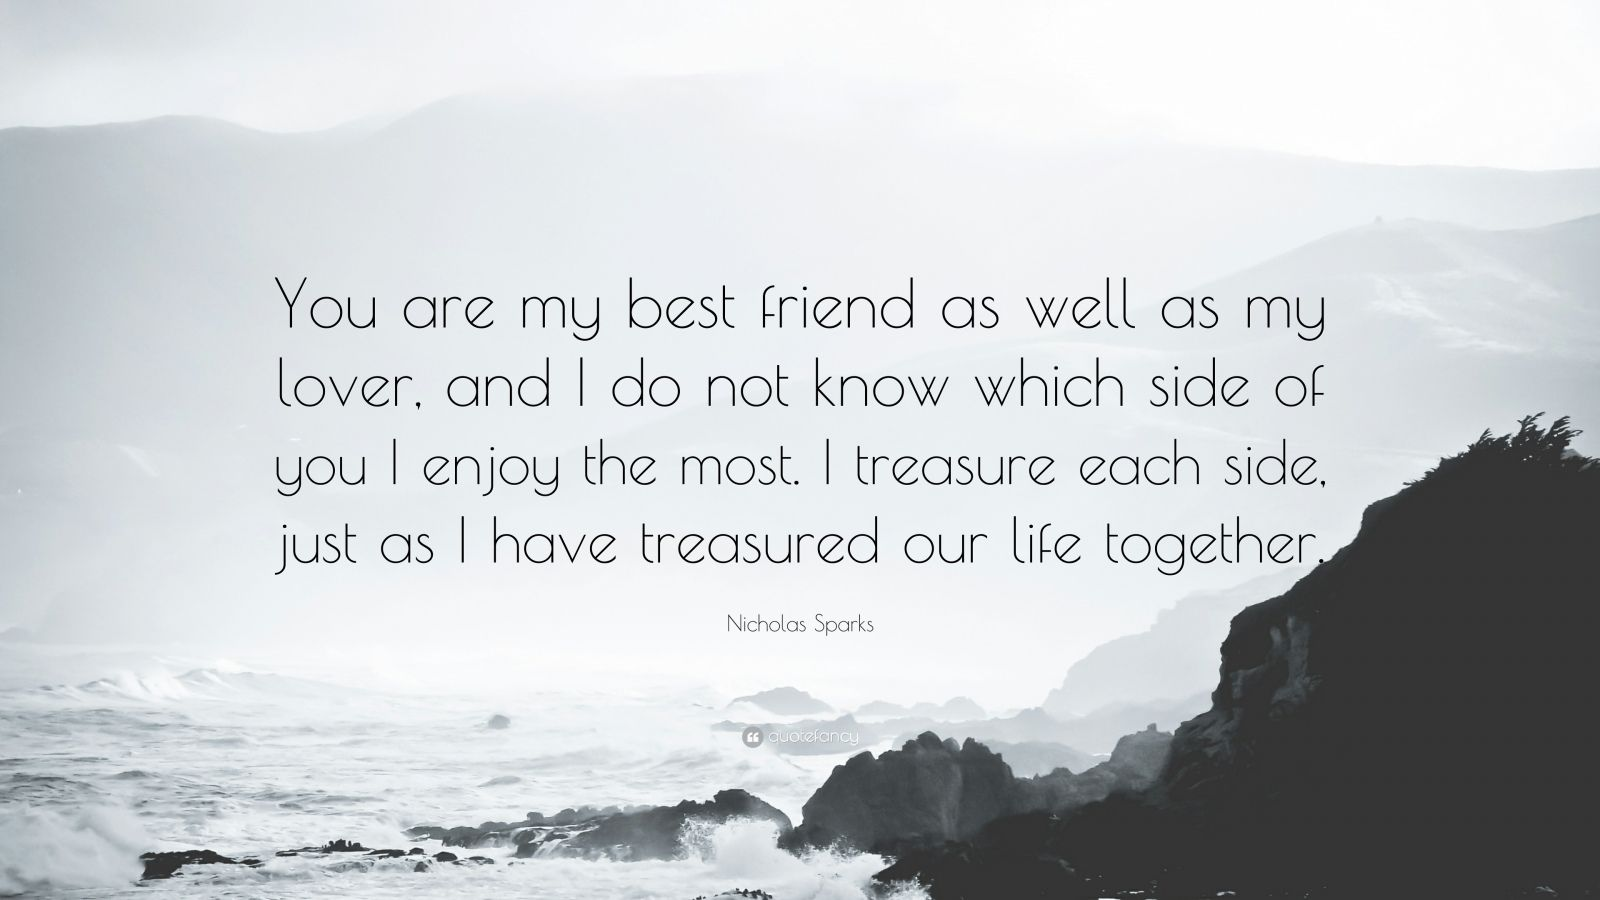 "Nicholas Sparks Quote: ""You are my best friend as well as my lover, and I do not know which side of you I enjoy the most. I treasure each side, just as I have treasured our life together."""